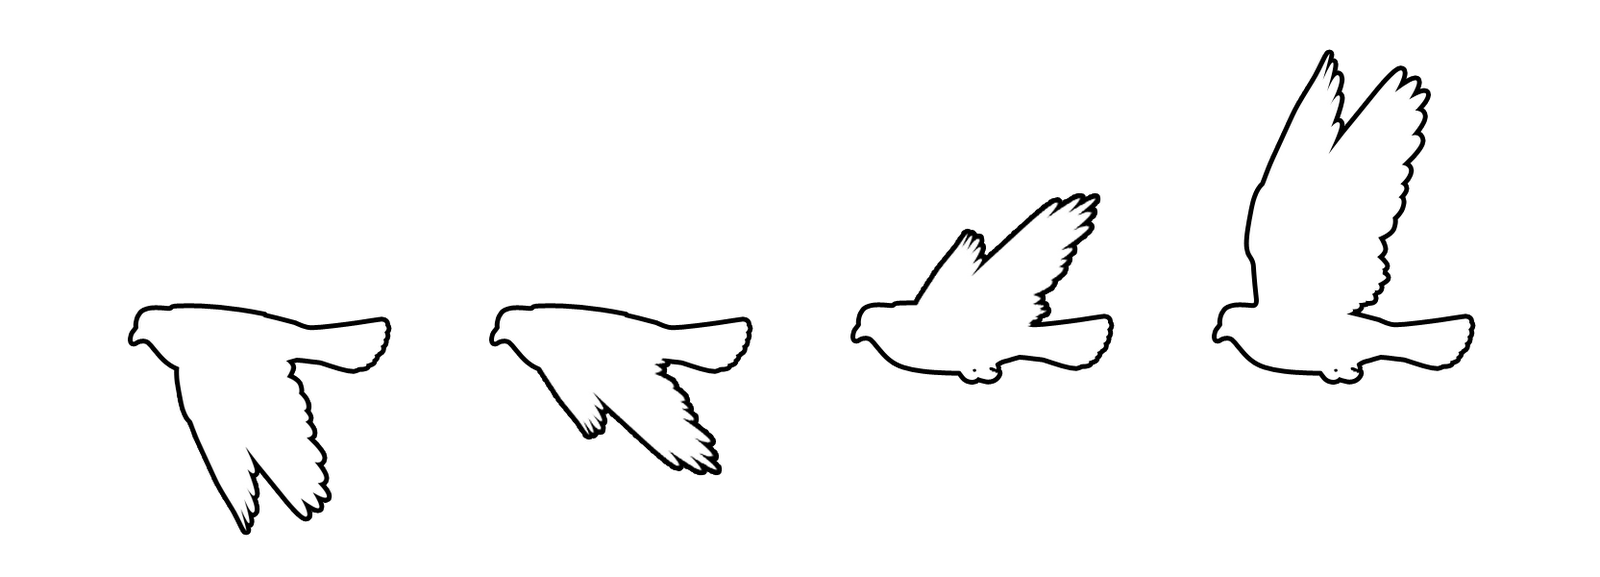 This Image Sequence Shows A Bird Flying Forward We Can See Different Wing Movements In Sequential Visual Imag How To Draw Shadow Movement Drawing Romantic Art